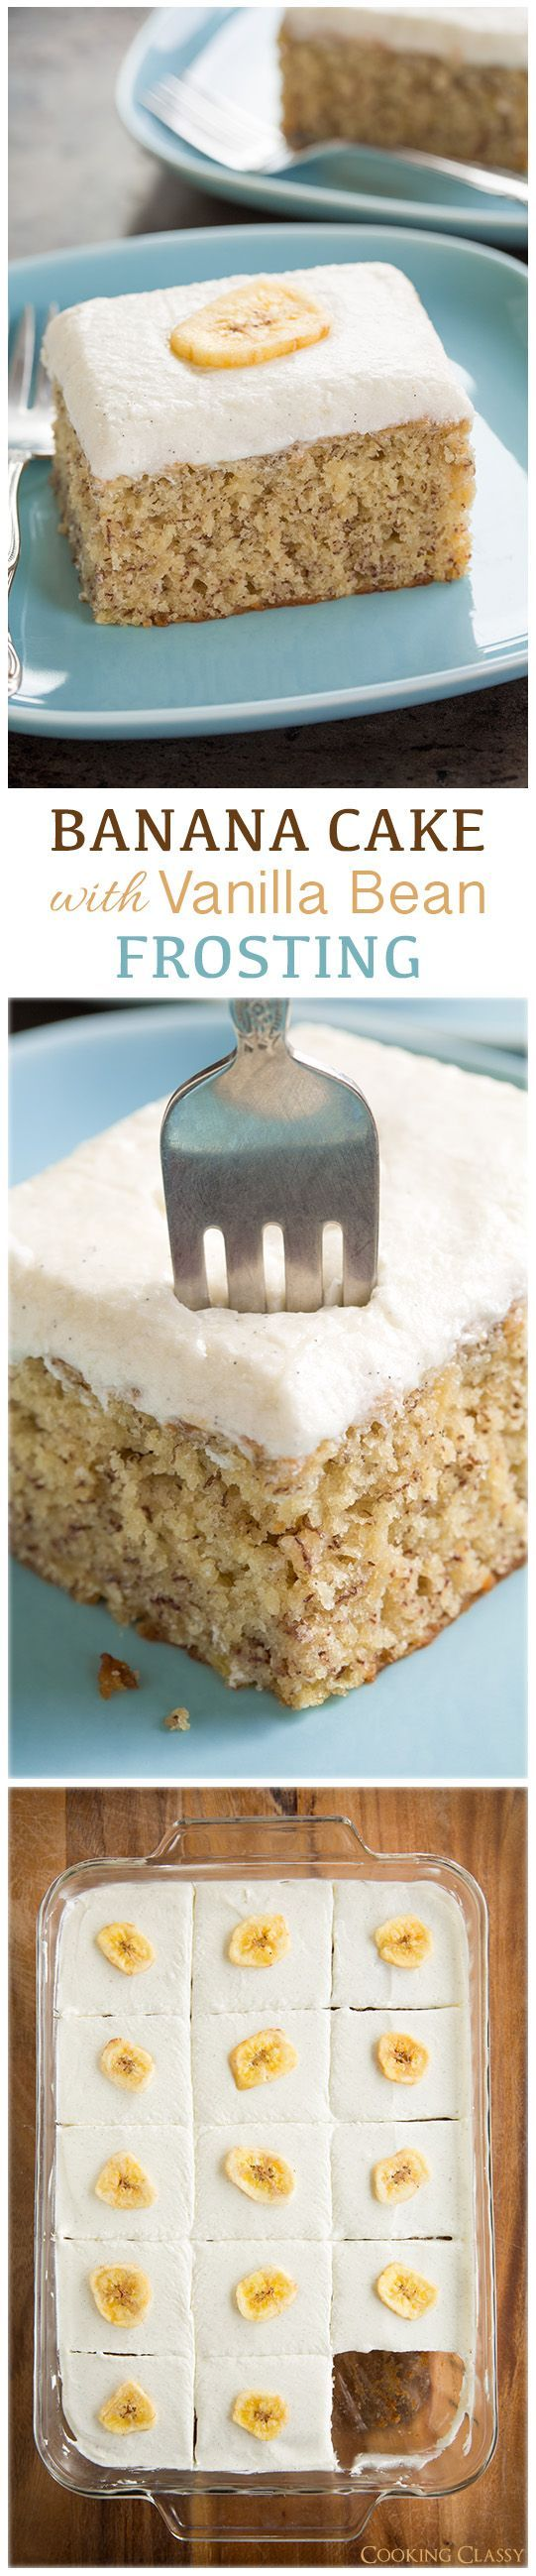 To Die For Banana Cake with Vanilla Bean Frosting - this cake is completely irresistible!! SO amazingly good! (Banana Cake)